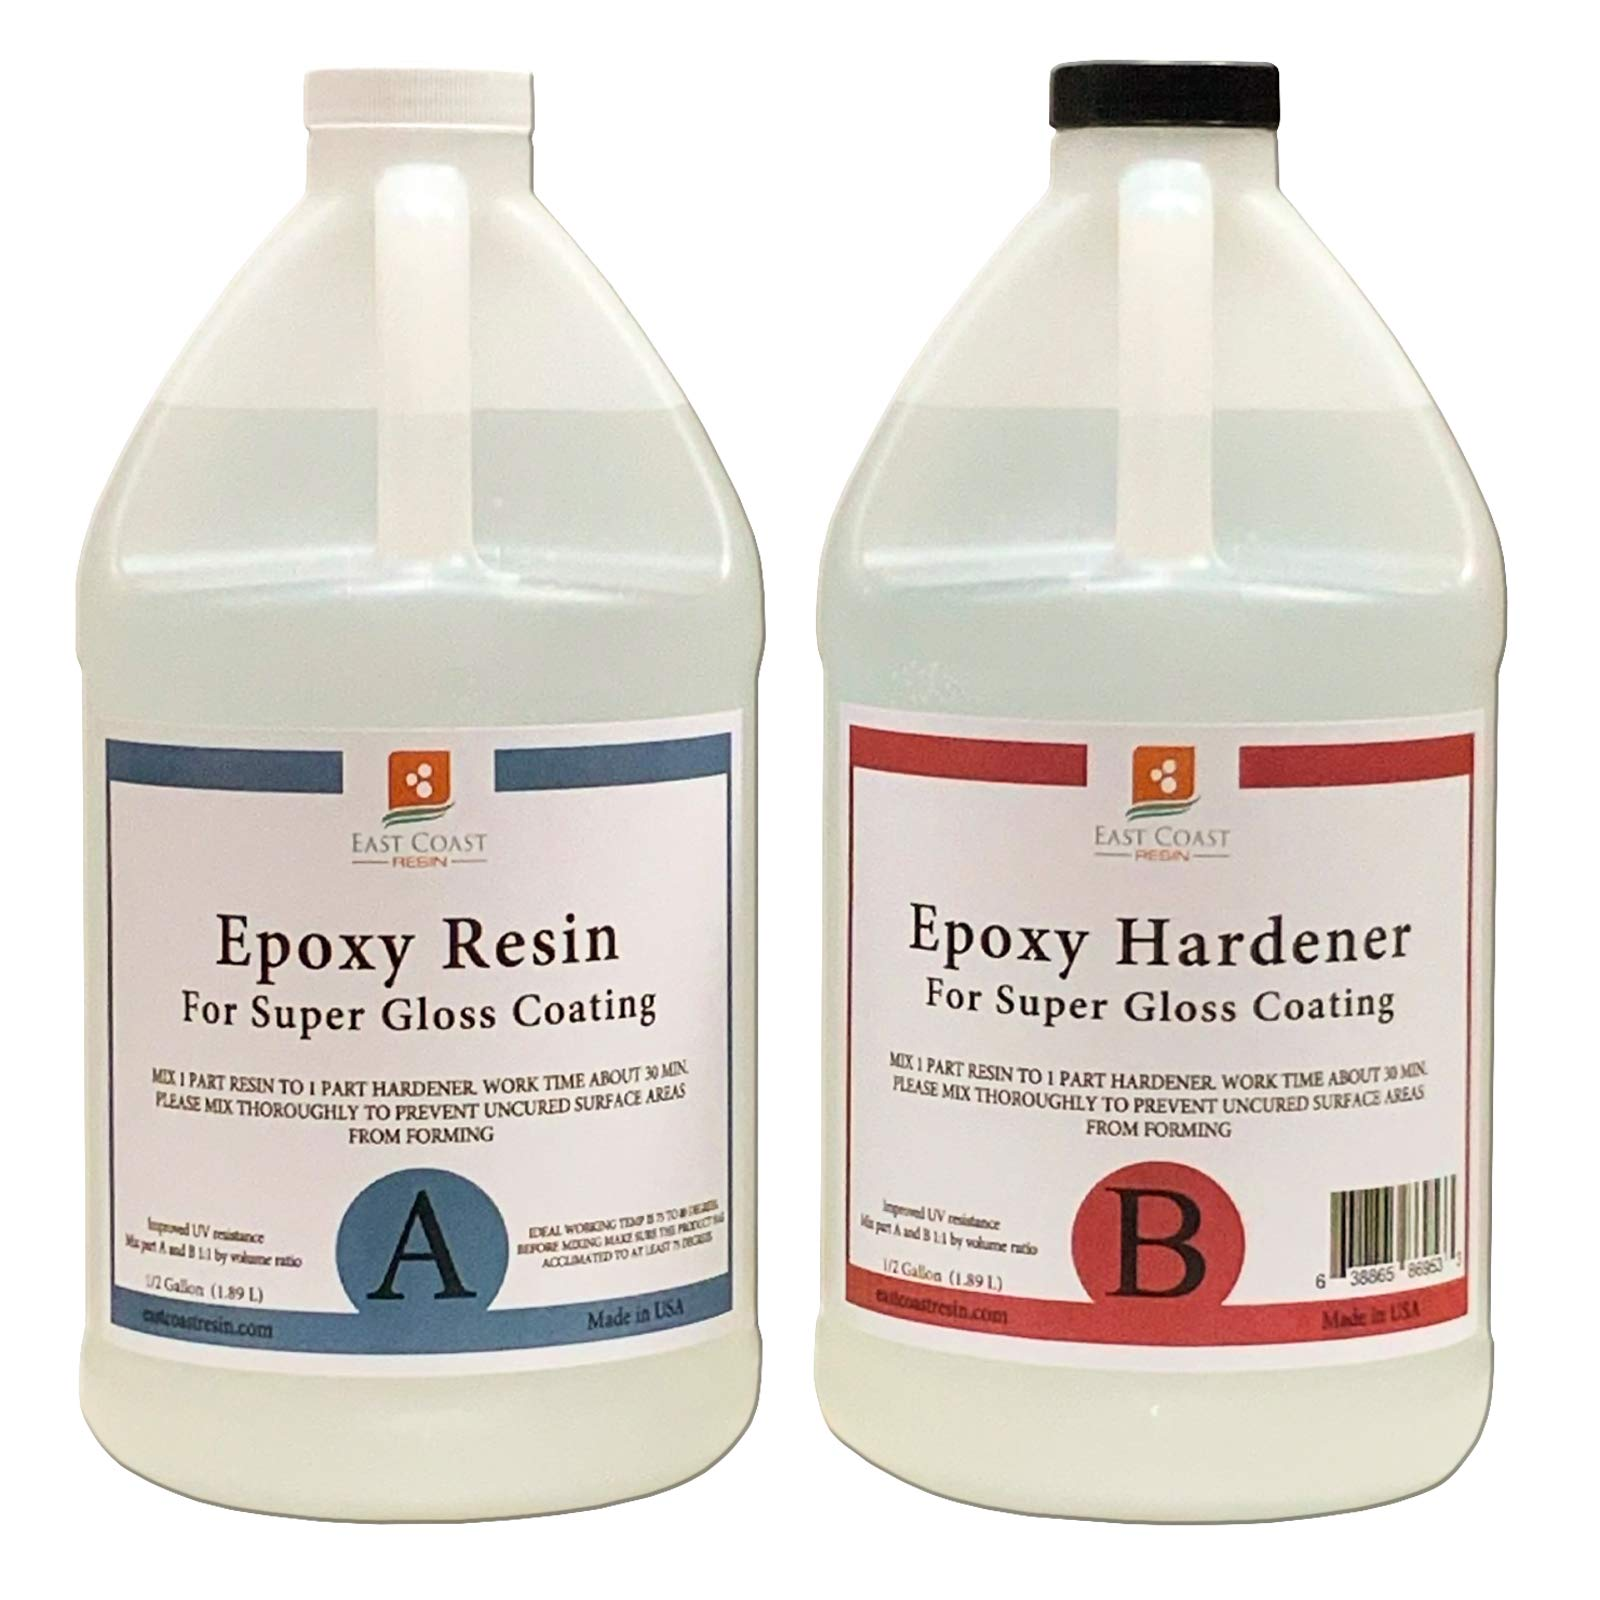 EPOXY Resin 1 Gal Kit, General Purpose (Coating, Table Tops, Casting) by East Coast Resin